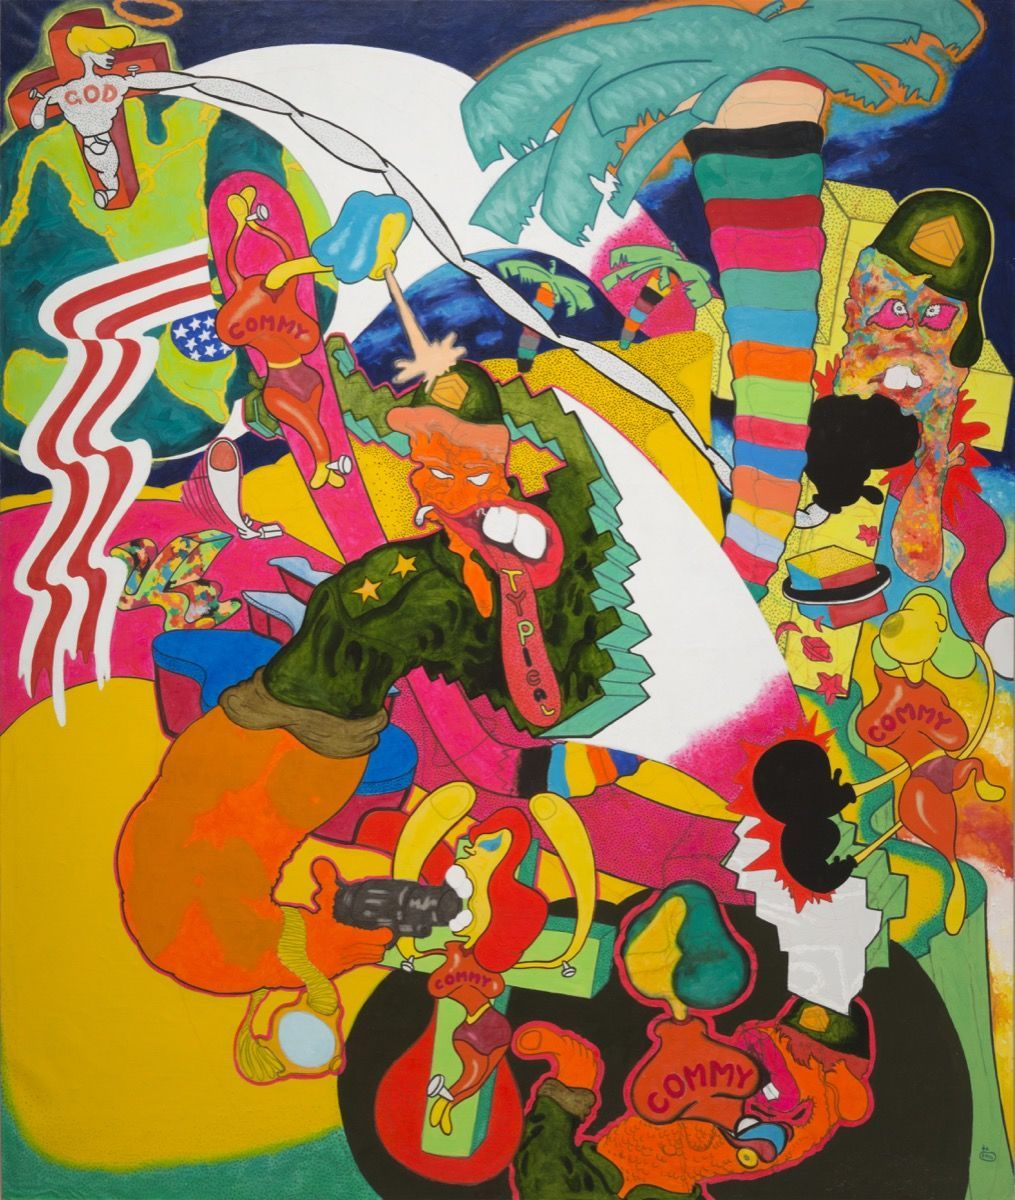 """Peter Saul, """"Vietnam,"""" 1966.Copyright Peter Saul. Courtesy of Mary Boone Gallery, New York."""